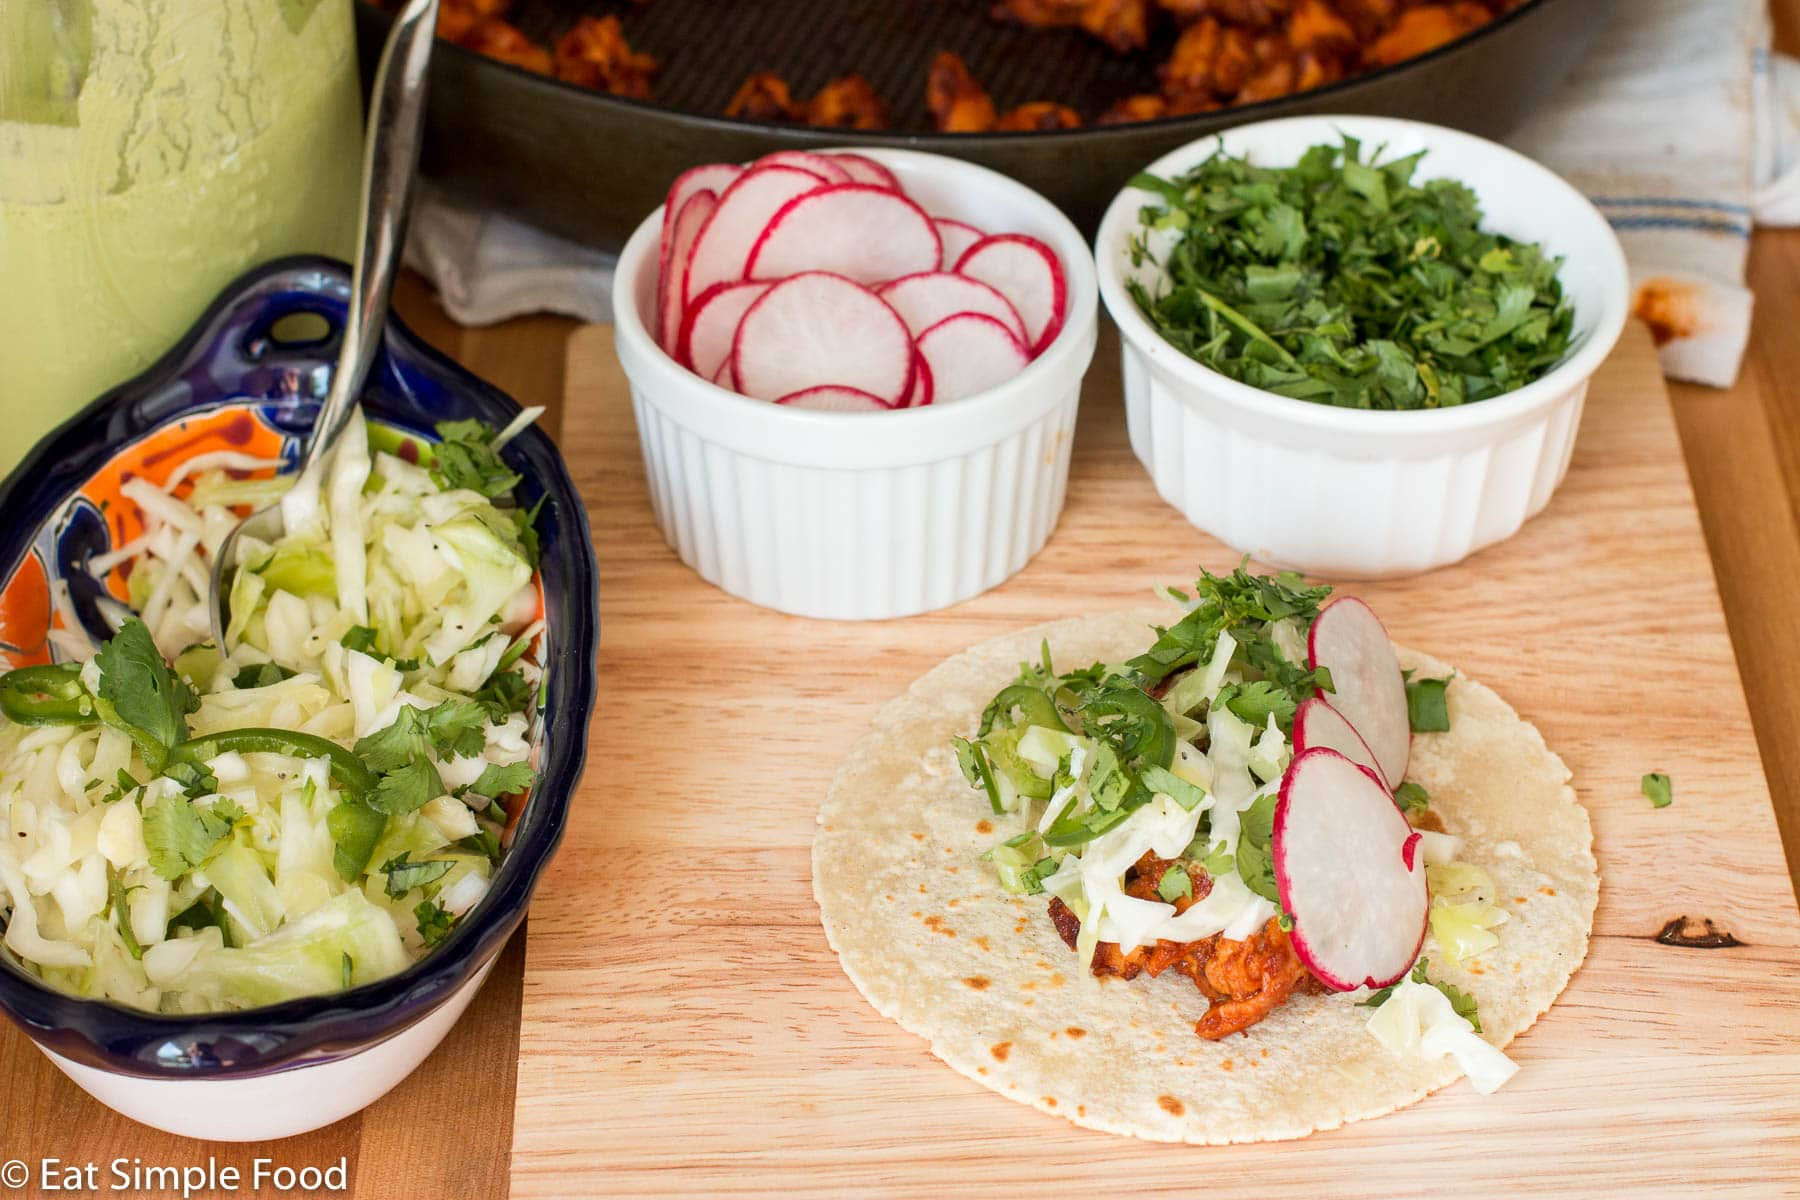 One taco filled with chicken, cole slaw, cilantro, sliced jalapenos, and 3 sliced radishes. Ingredients in background and cole slaw on the side.